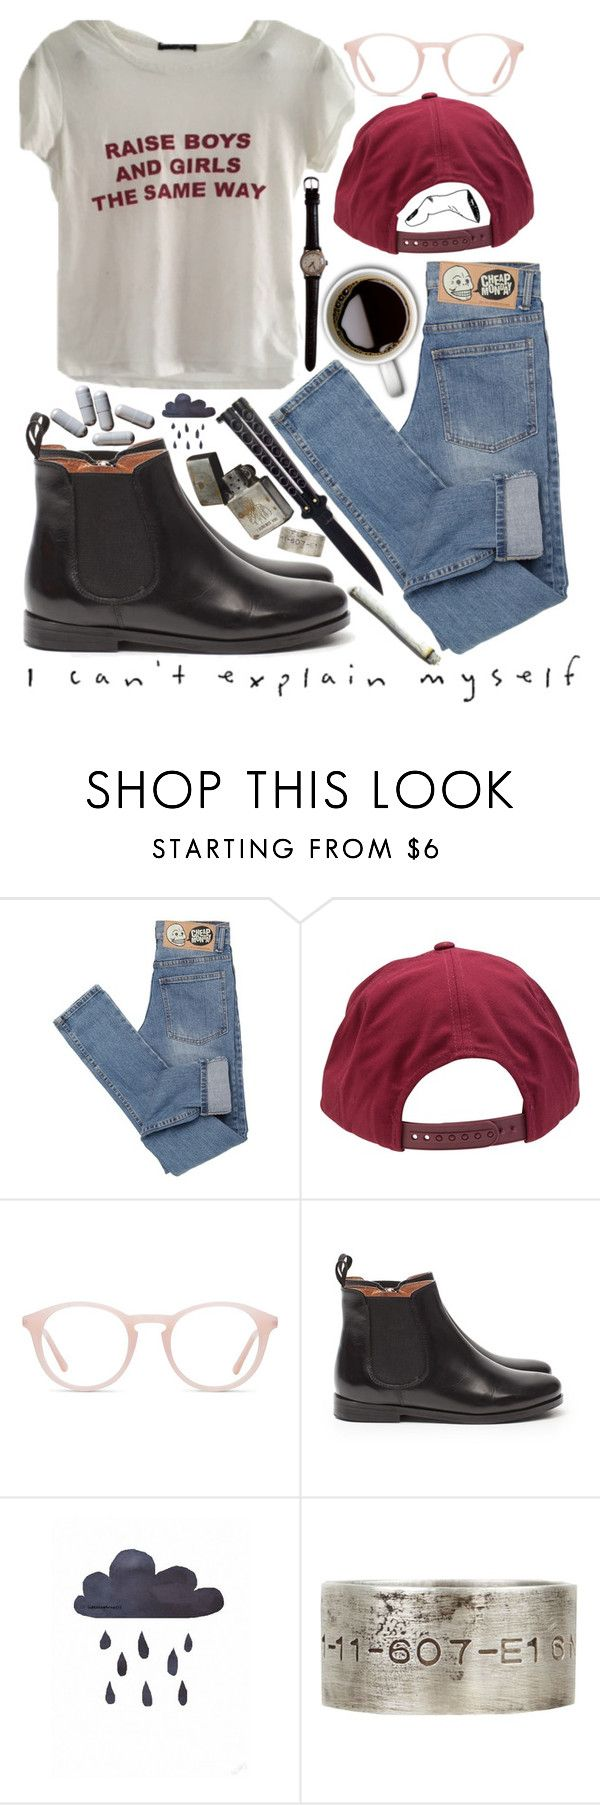 """Lighed og Logik"" by wrenmoreaux ❤ liked on Polyvore featuring Cheap Monday, Brixton, Ace, MANGO and AllSaints"